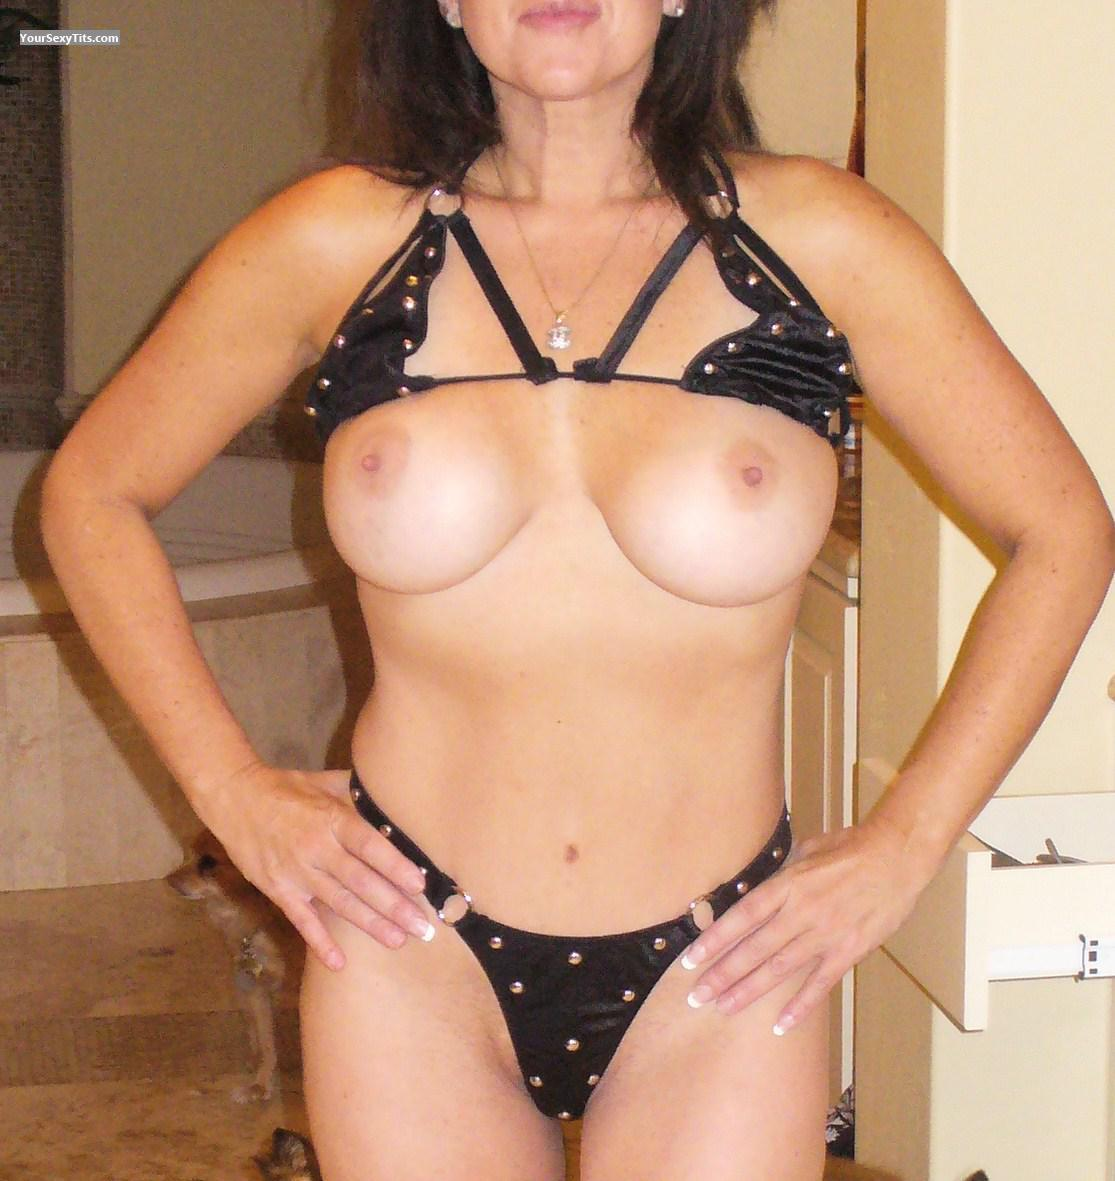 Tit Flash: Wife's Big Tits - Young Wife from United States